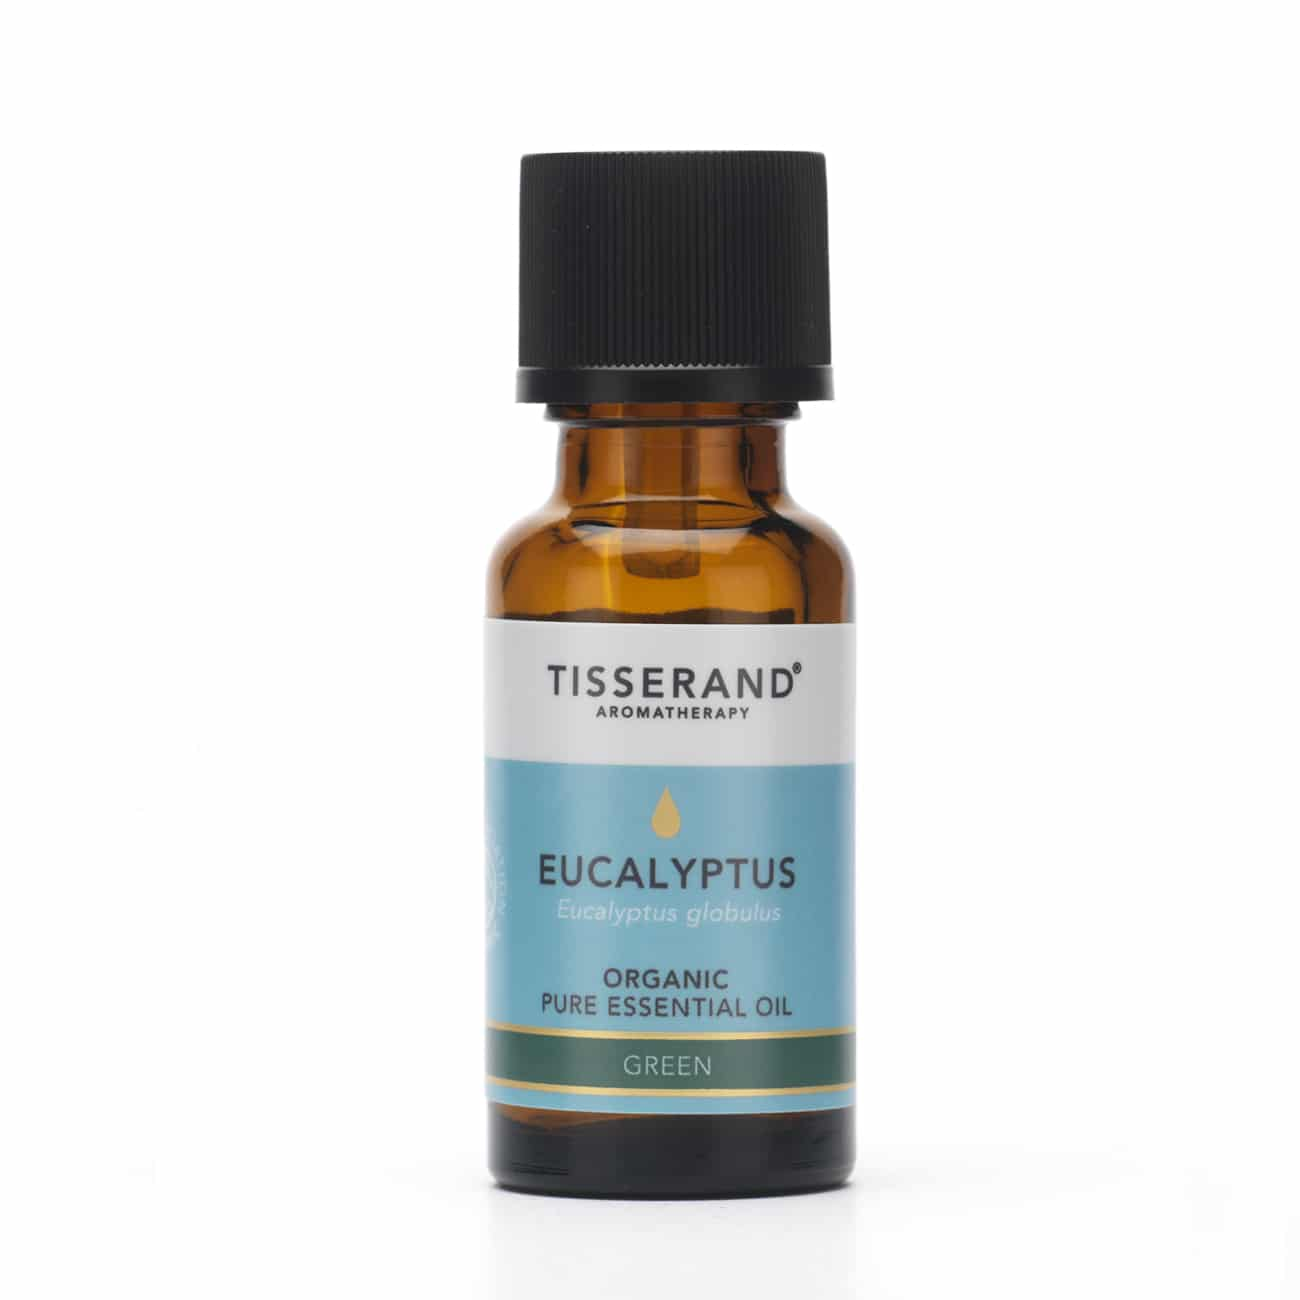 eucalyptus oil Jedwards international, inc is a wholesale bulk supplier of eucalyptus citriodora oil, commonly known as lemon eucalyptus, an essential oil sourced from brazil that is steam distilled from the leaves of the corymbia citriodora tree.